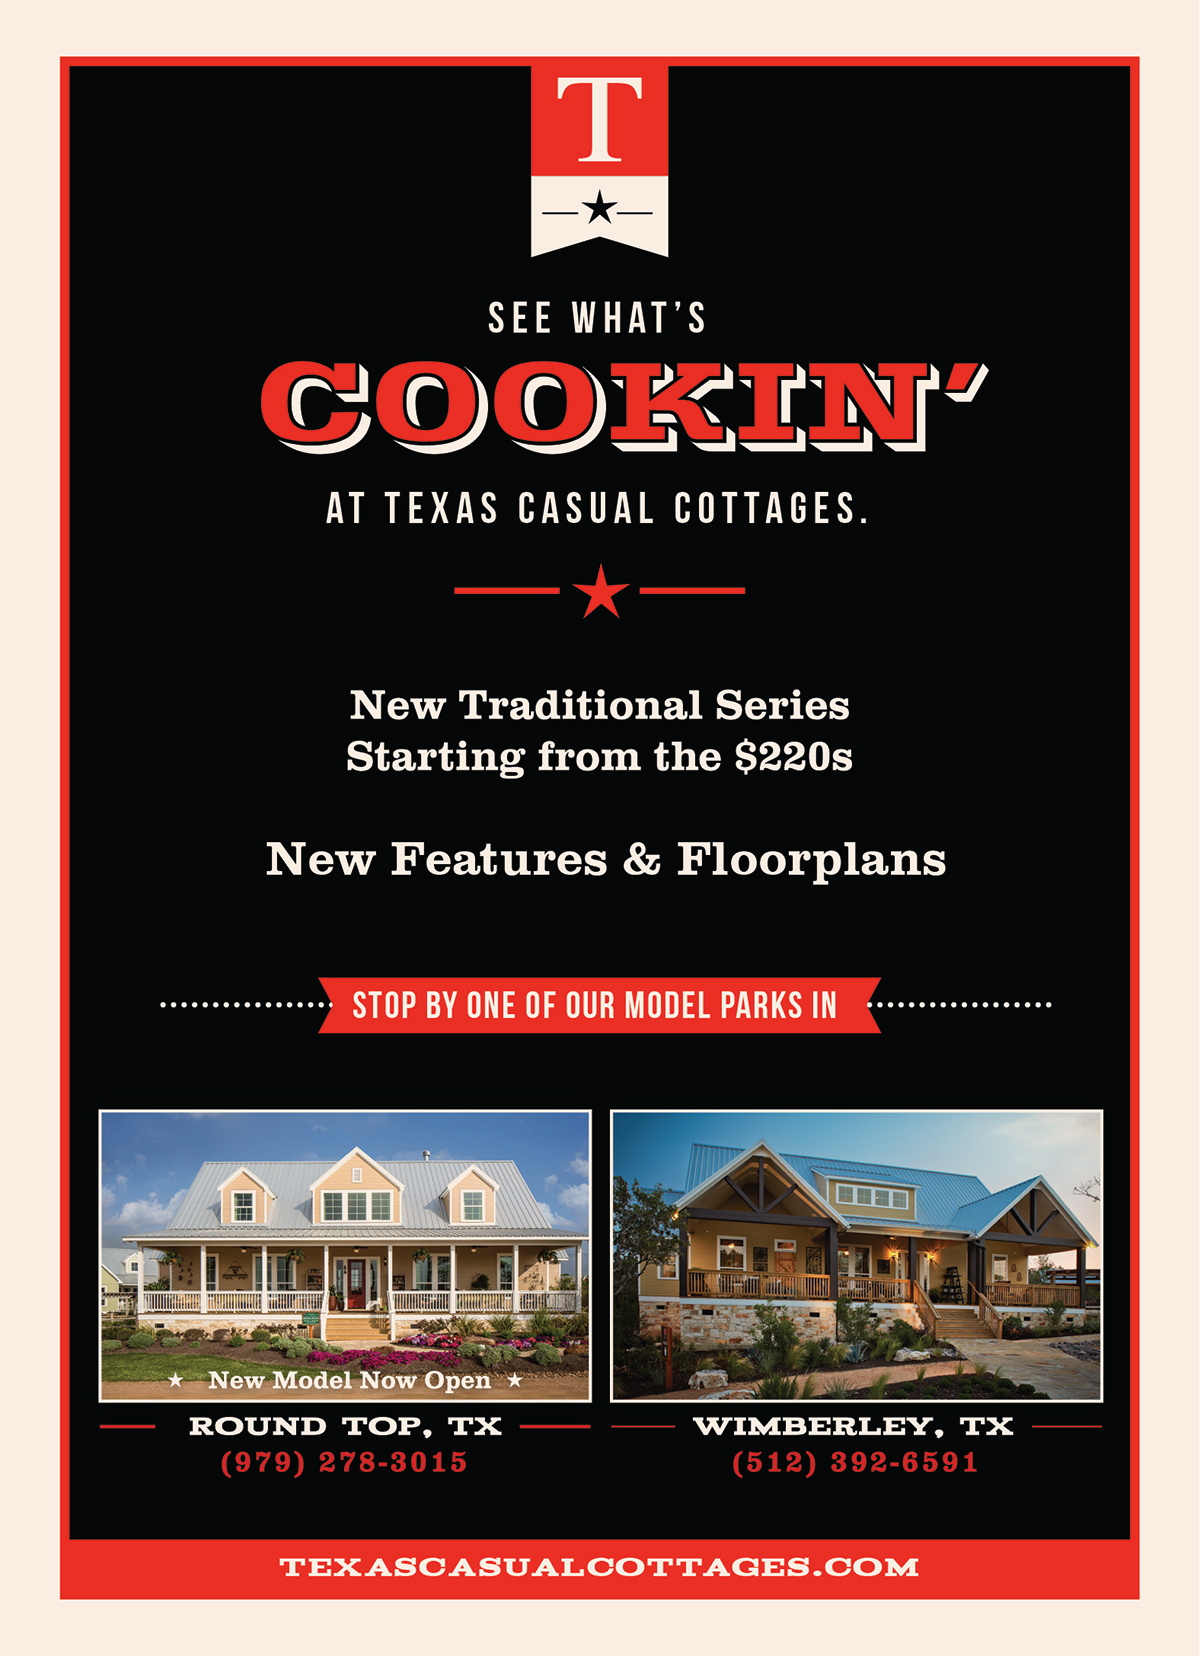 Texas Casual Cottages Drip Campaign on Behance